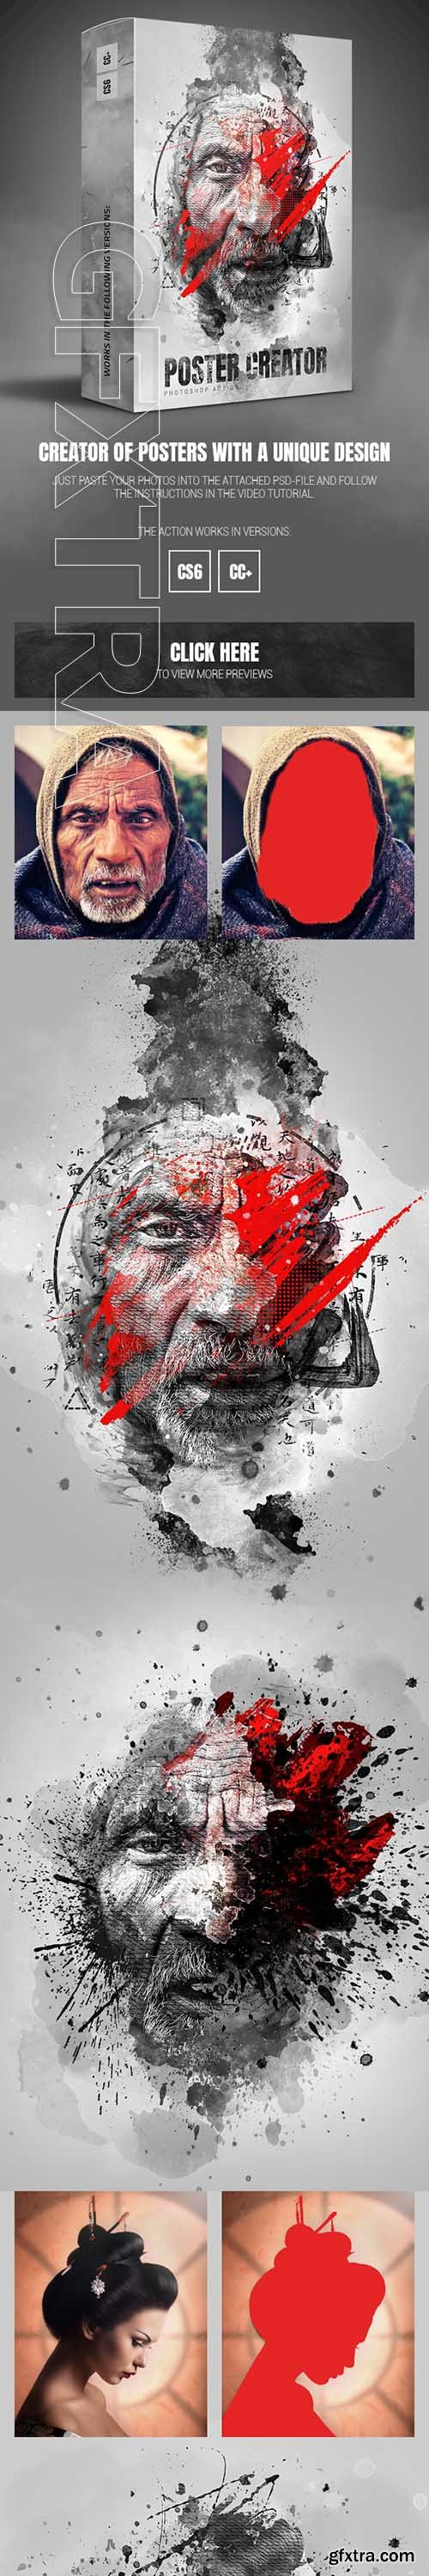 GraphicRiver - Poster Creator Photoshop Action 25155437